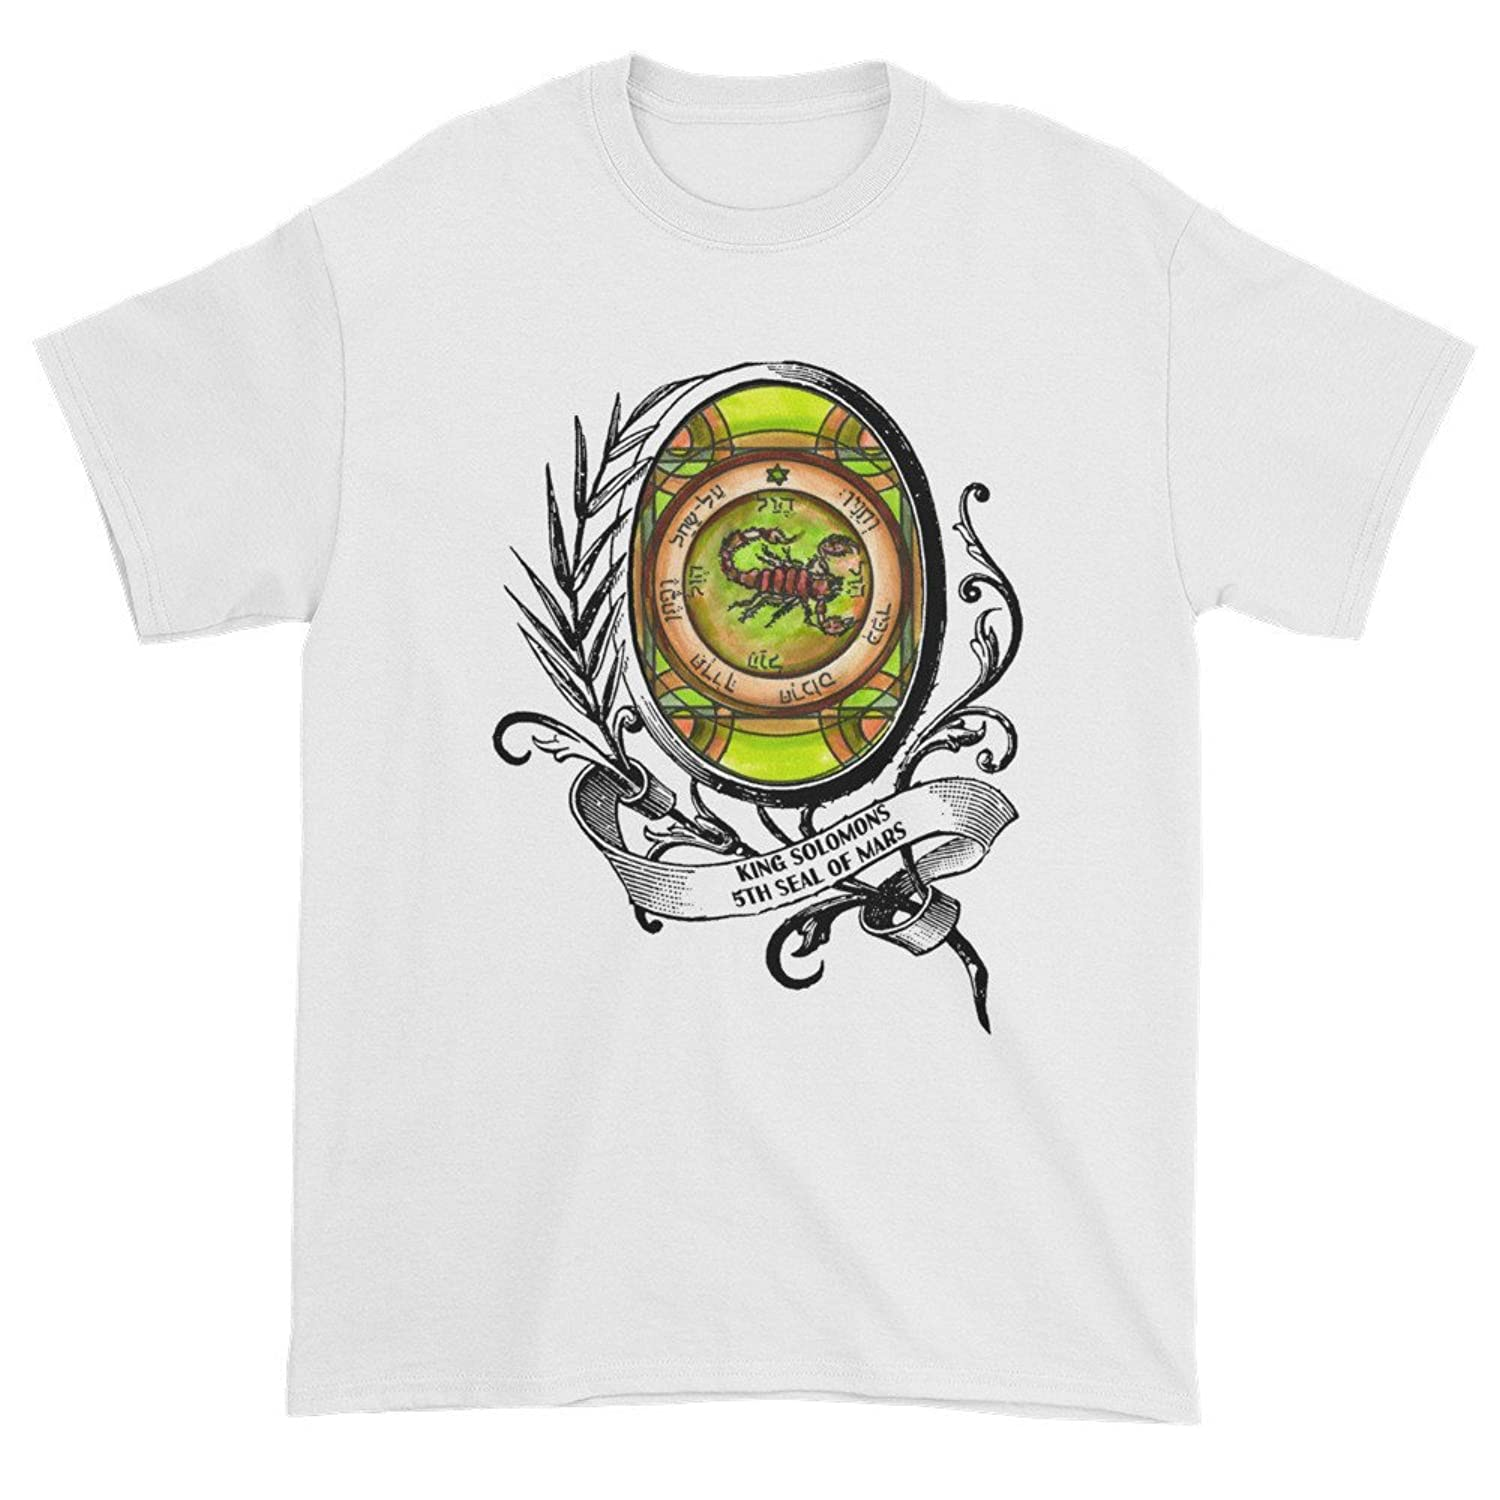 Solomons Mars 5 to Cause Demons to Obey Unisex T-shirt